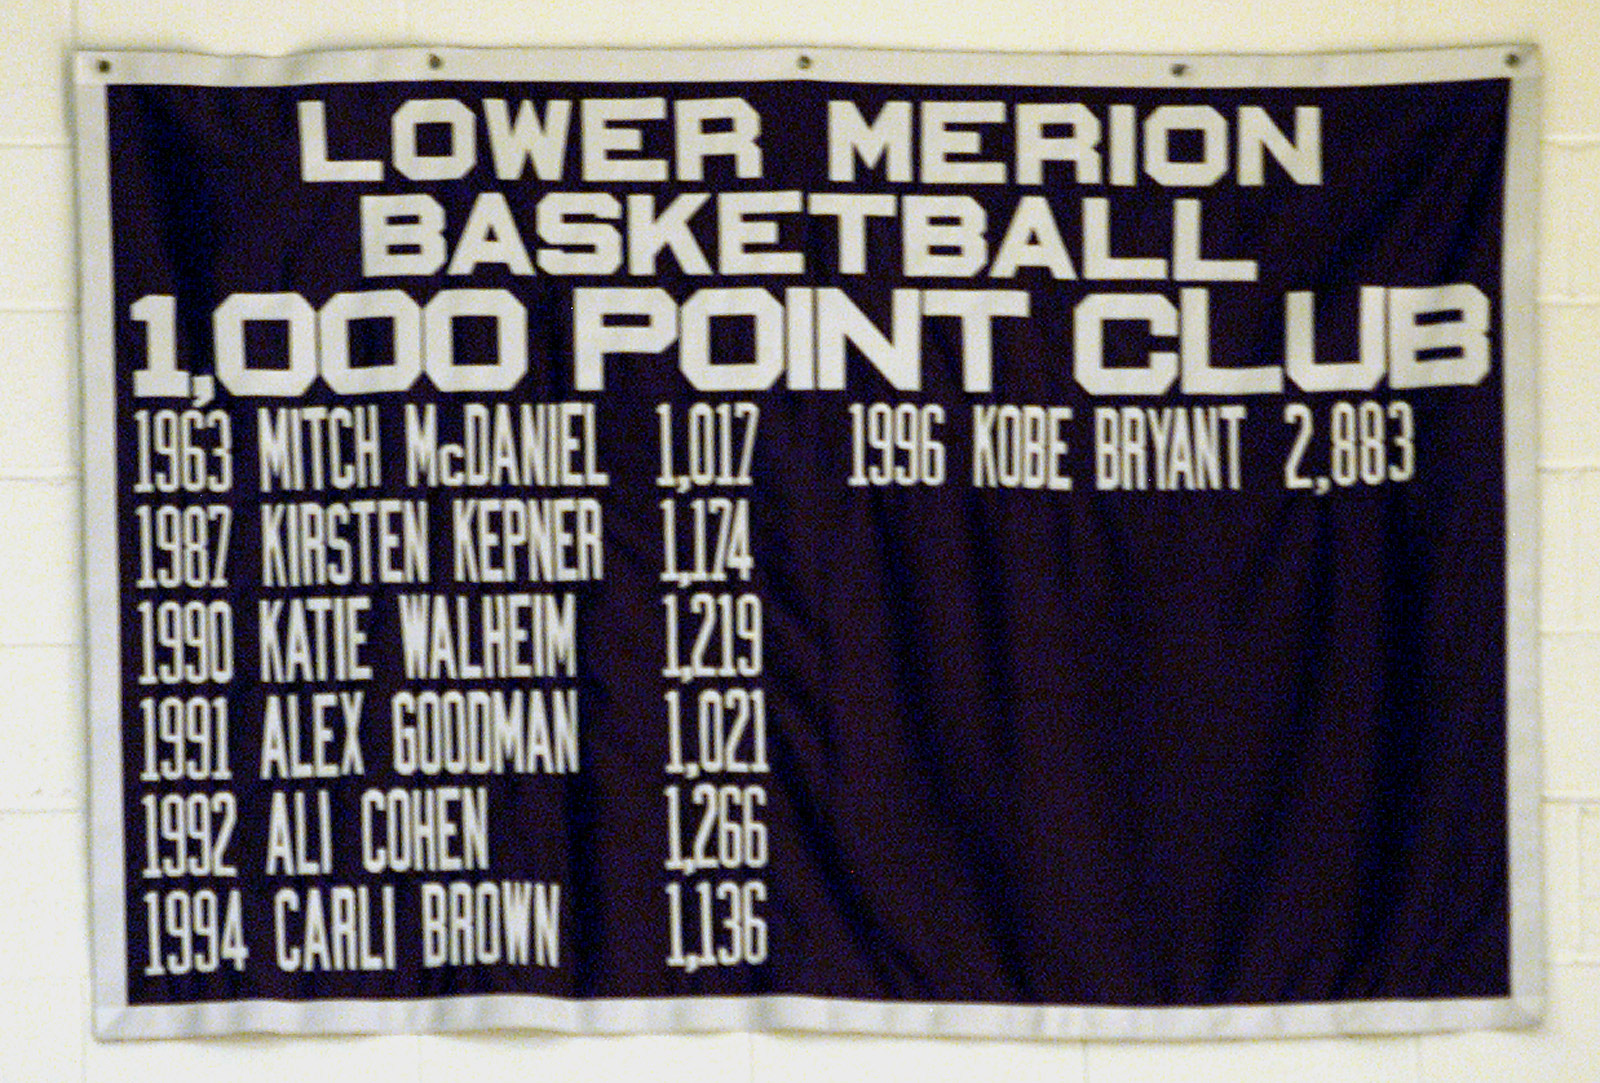 A banner hangs in the gym at Lower Merion High School in Philadelphia honoring Kobe Bryant among the other members of the school's 1,000 Point Club.